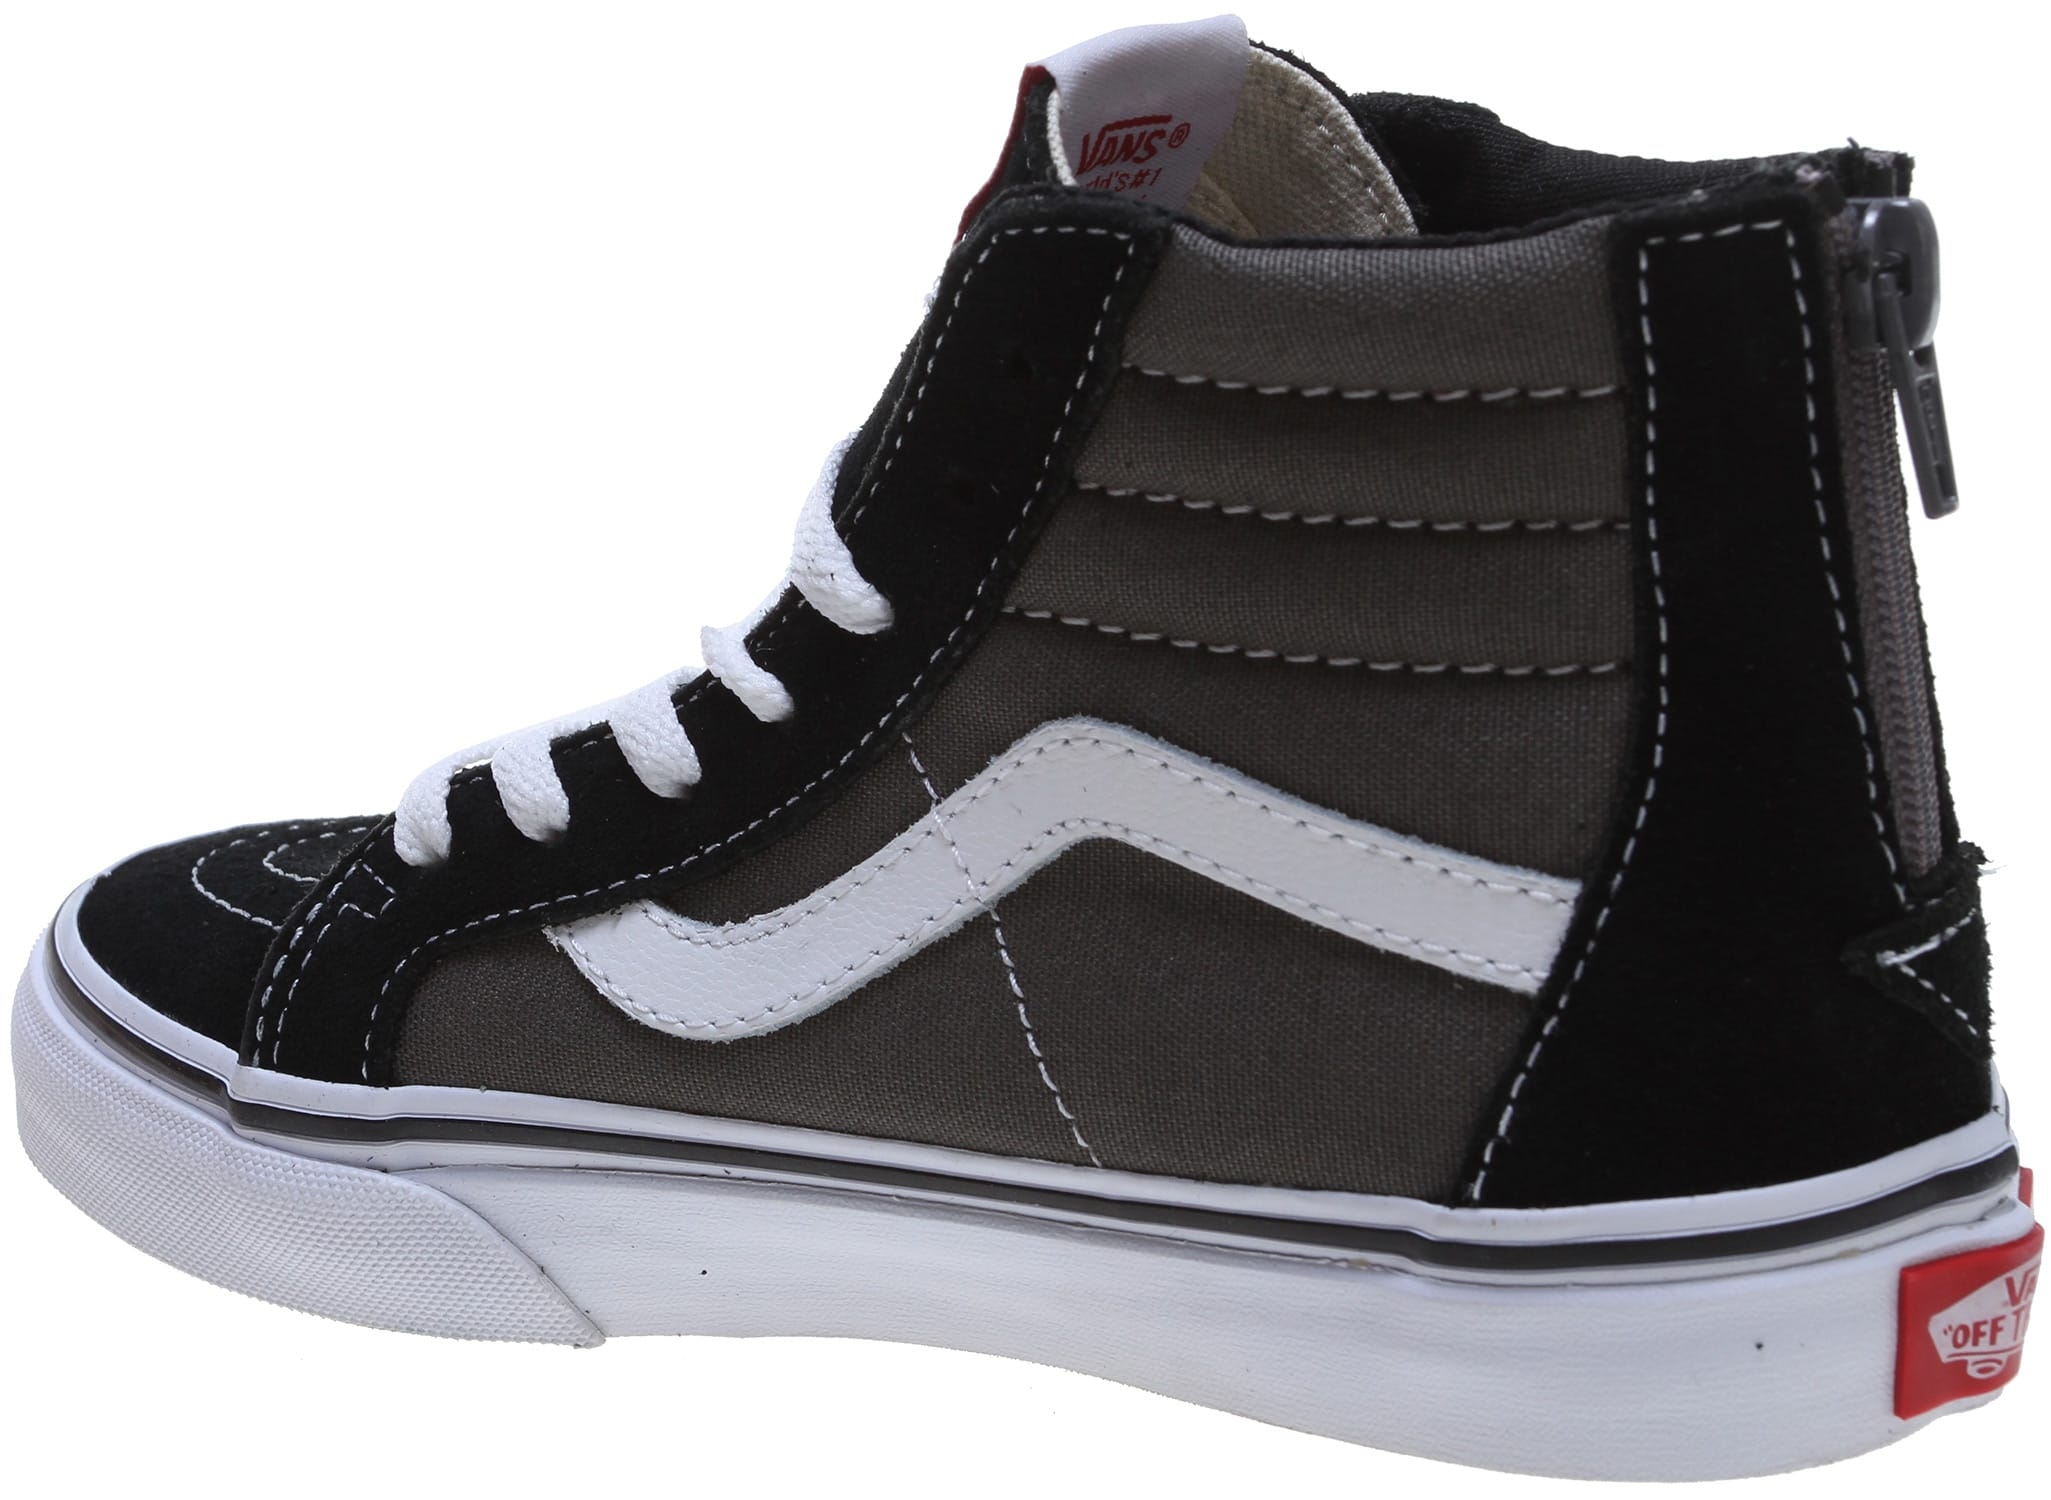 Vans Sk8-Hi Zip Sneaker(Children's) -Black/Charcoal Pictures Sale Online Outlet Authentic X808T